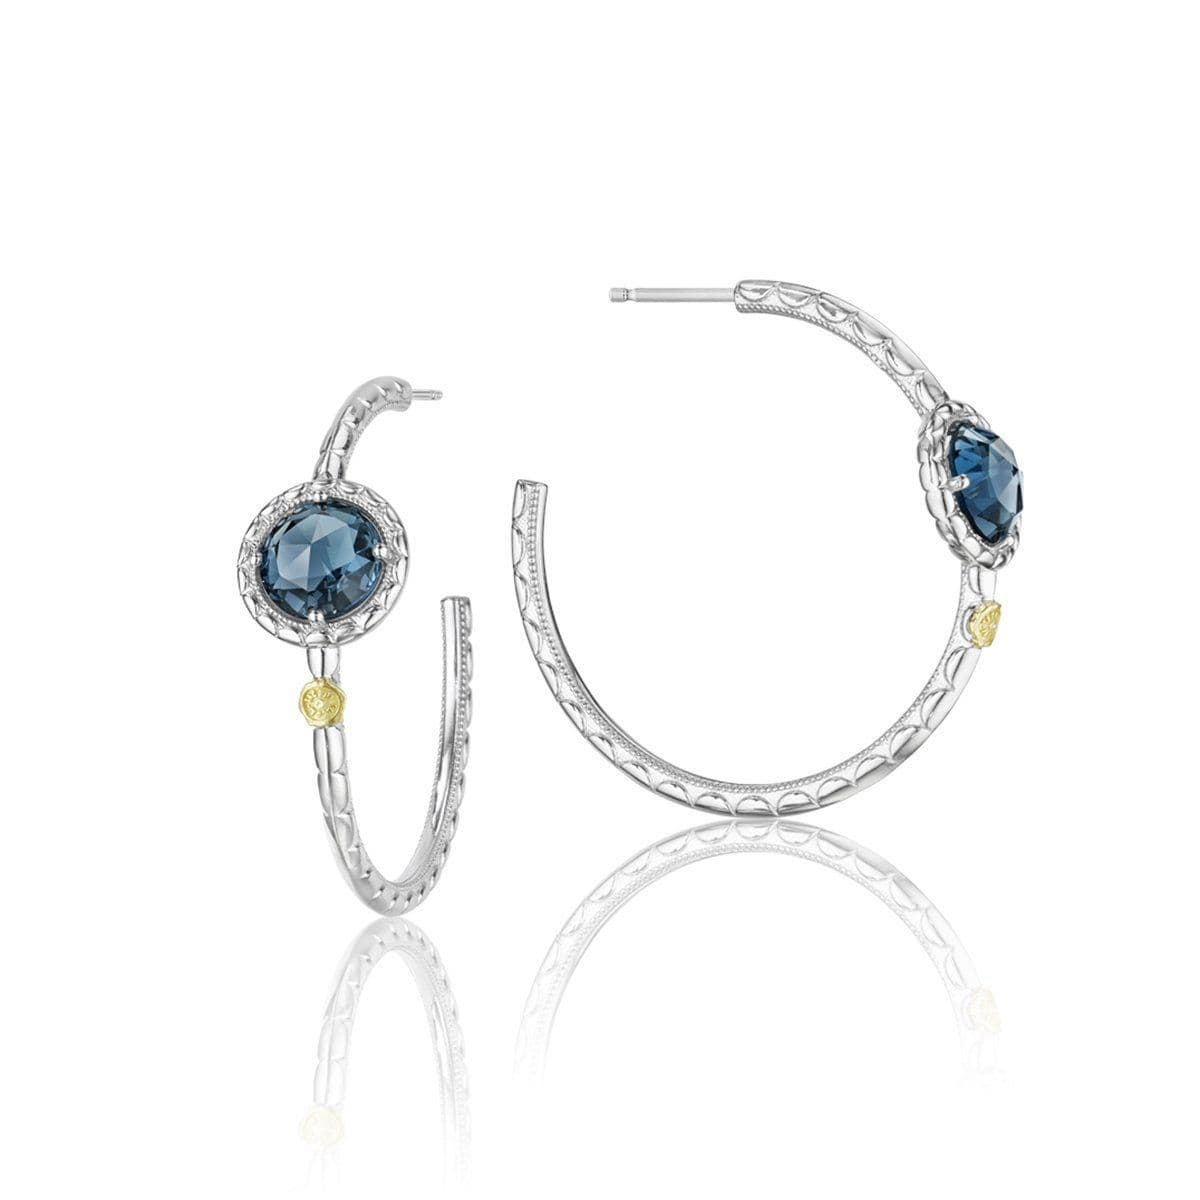 Silver 7mm London Blue Topaz Hoop Earrings - SE15733-Tacori-Renee Taylor Gallery